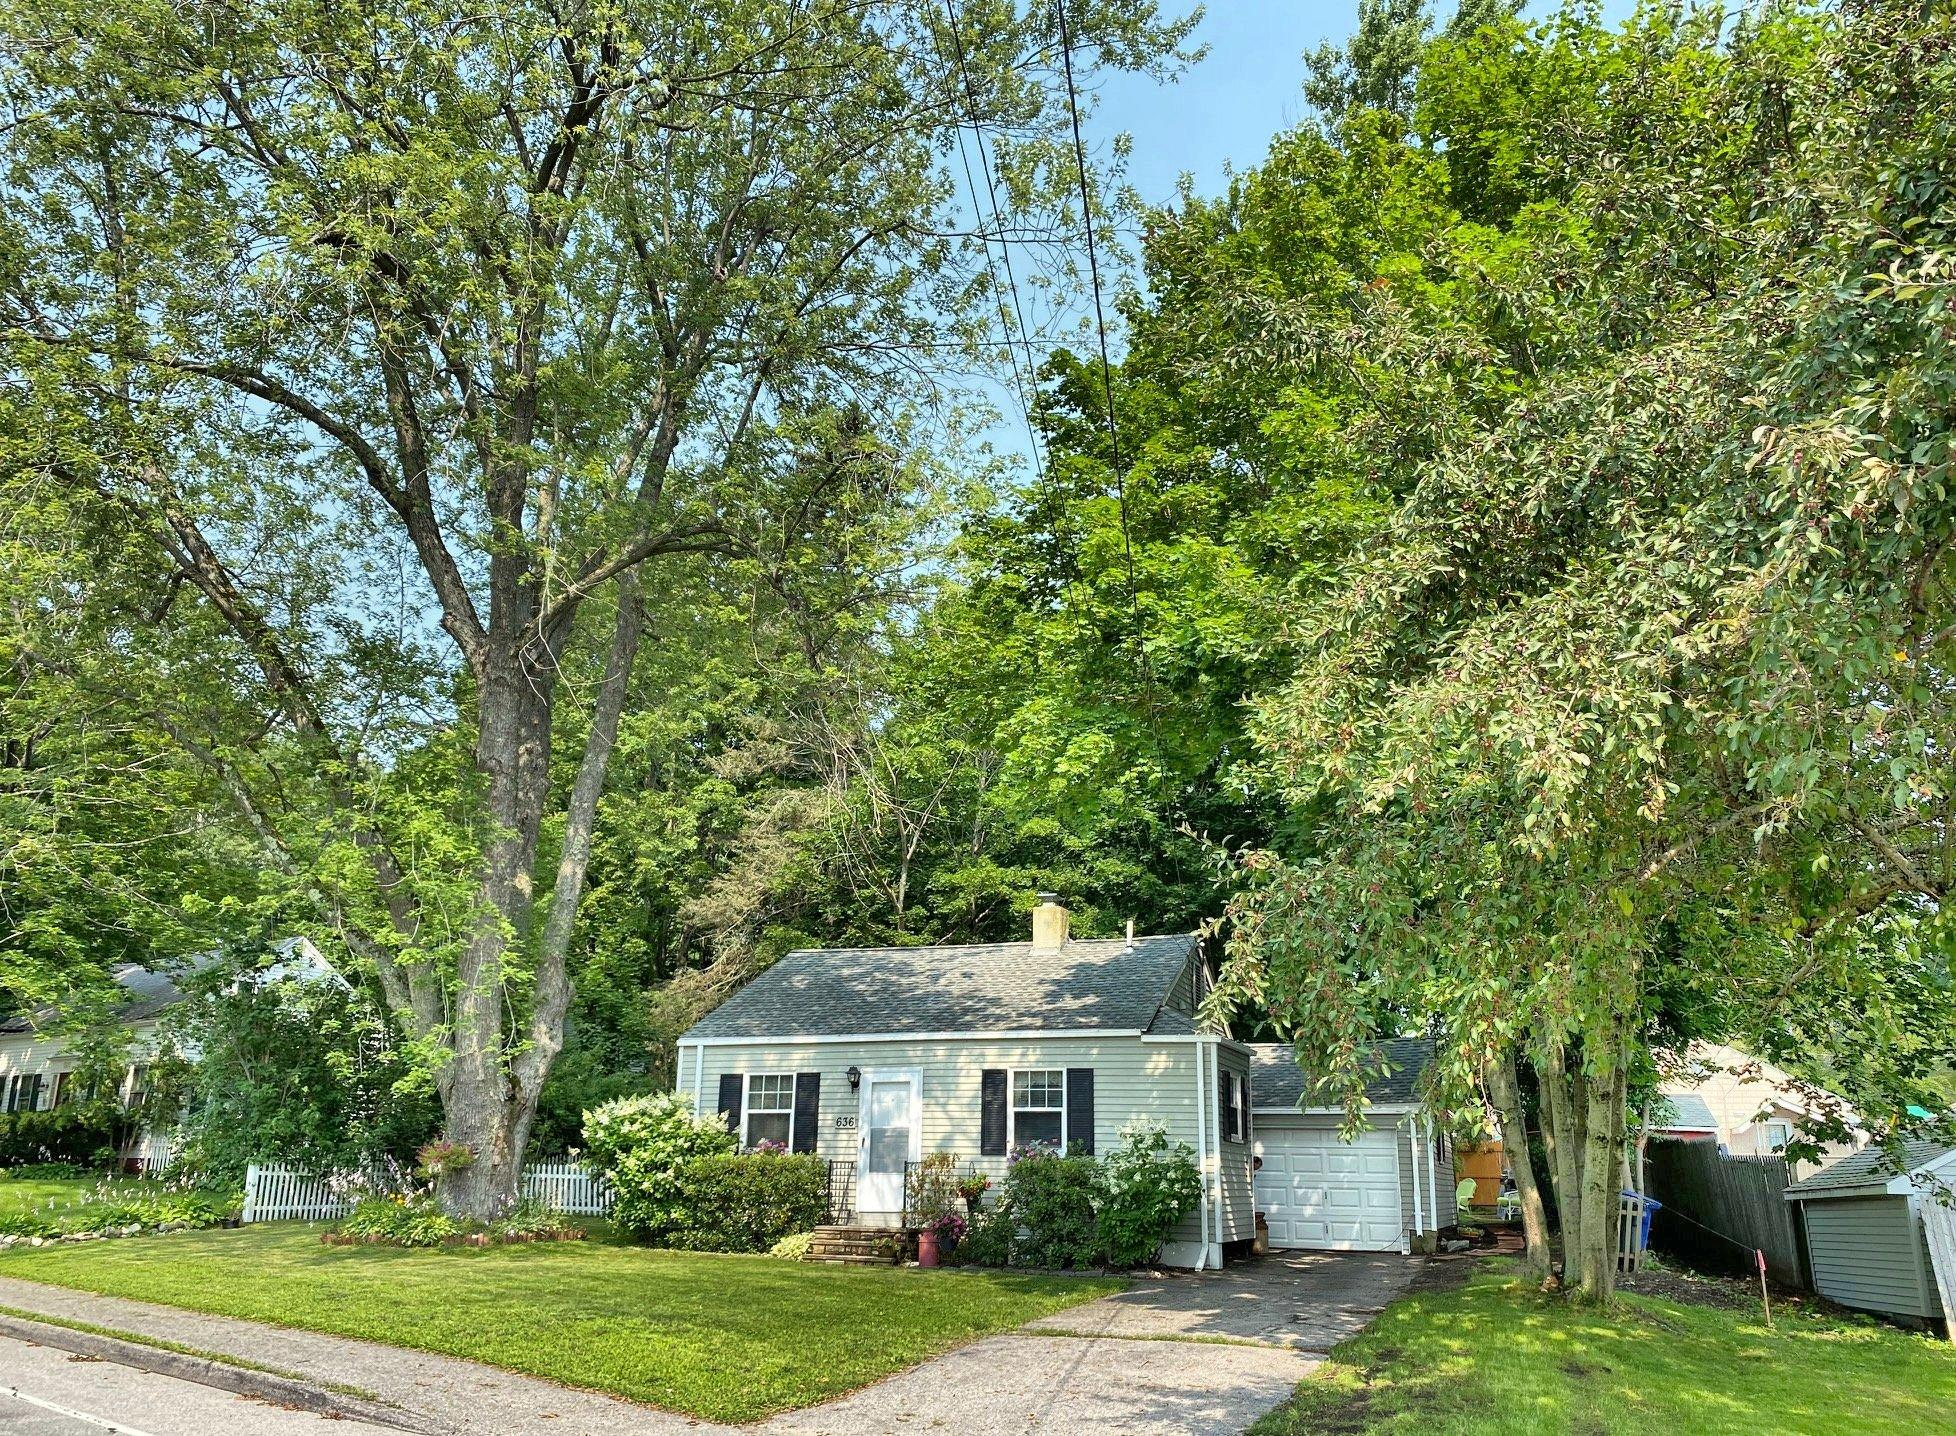 Main image for MLS listing 1502448